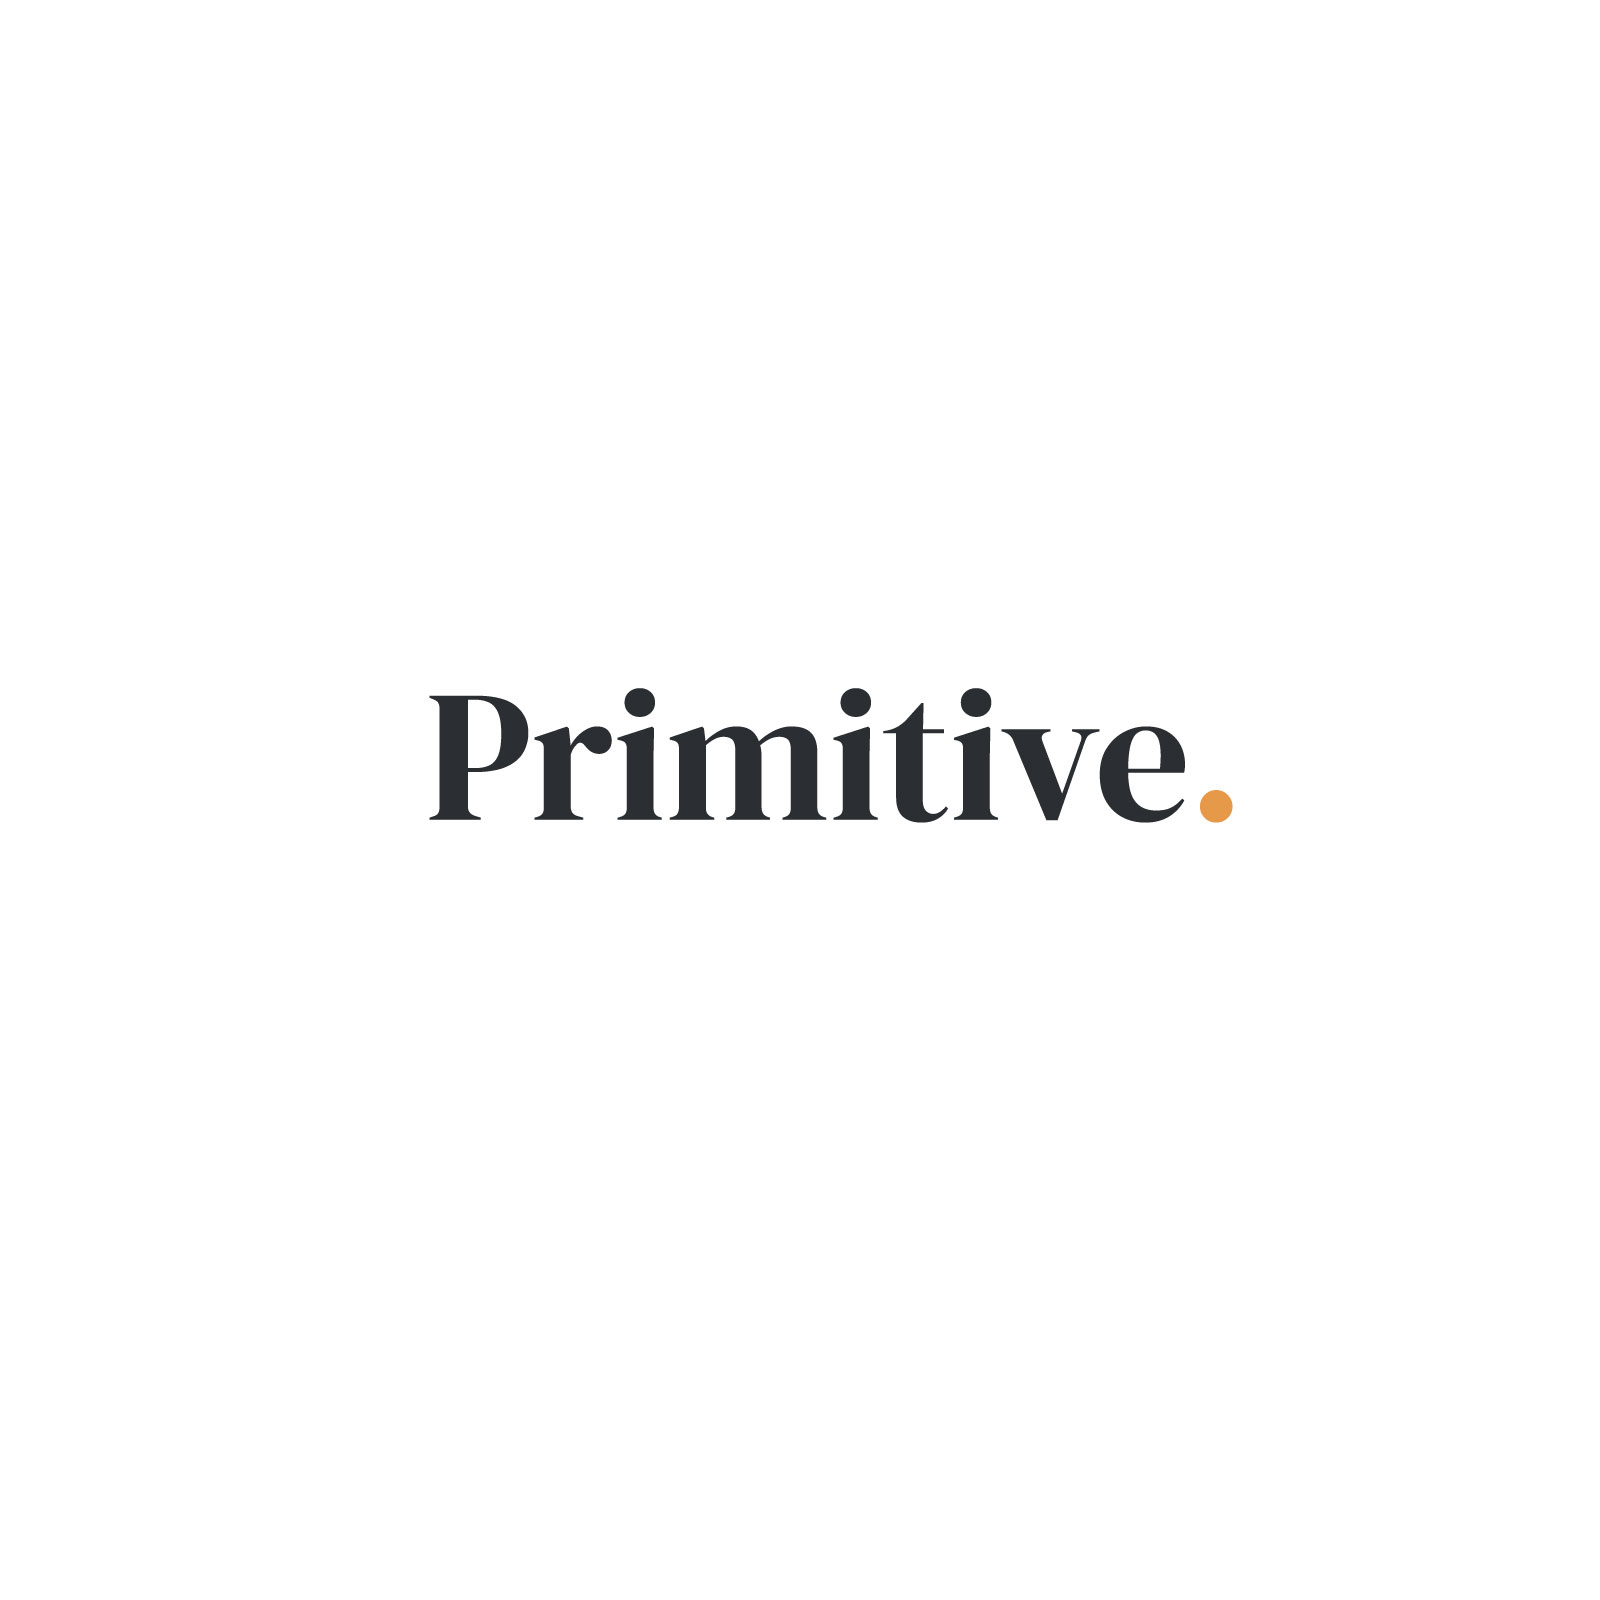 Primitive Logo on White